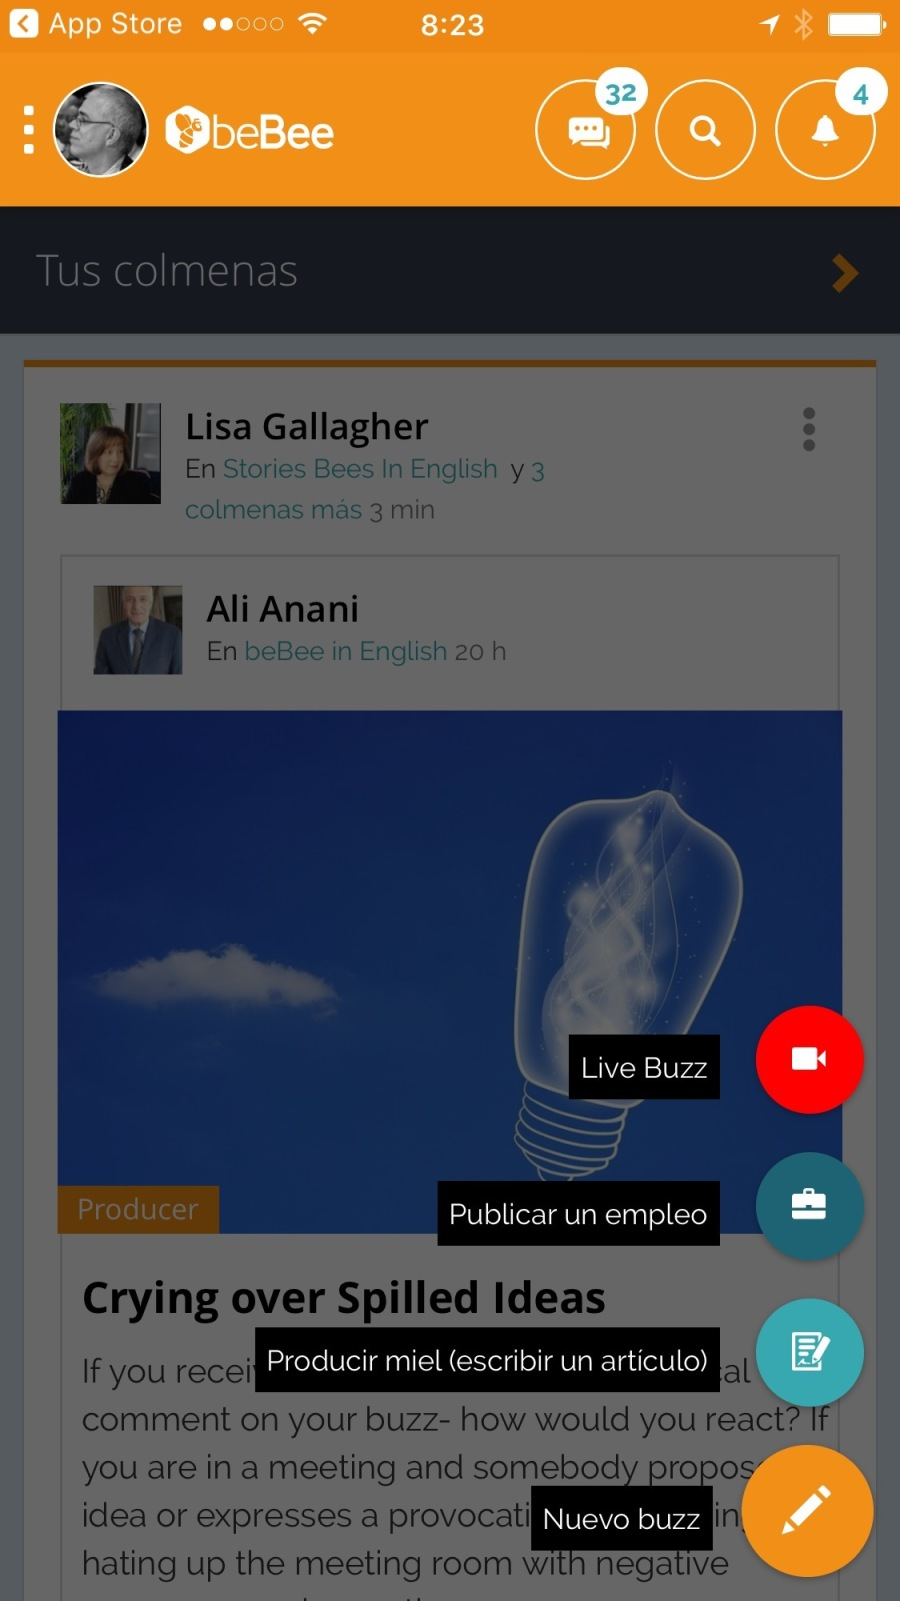 Tus colmenas  y Lisa Gallagher ¥   En St >s In English y 3  colmenas mas 3 min  ll Ali Anani En beBee in English 20 h        Live Buzz  Producer     Publicar un empleo  Crying over Spilled Ideas  If you recei Producir miel (escribir un articulo) al  comment on your buzz- how would you react? If you are in a meeting and somebody propos  idea or expresses a provocati hating up the meeting room with negative